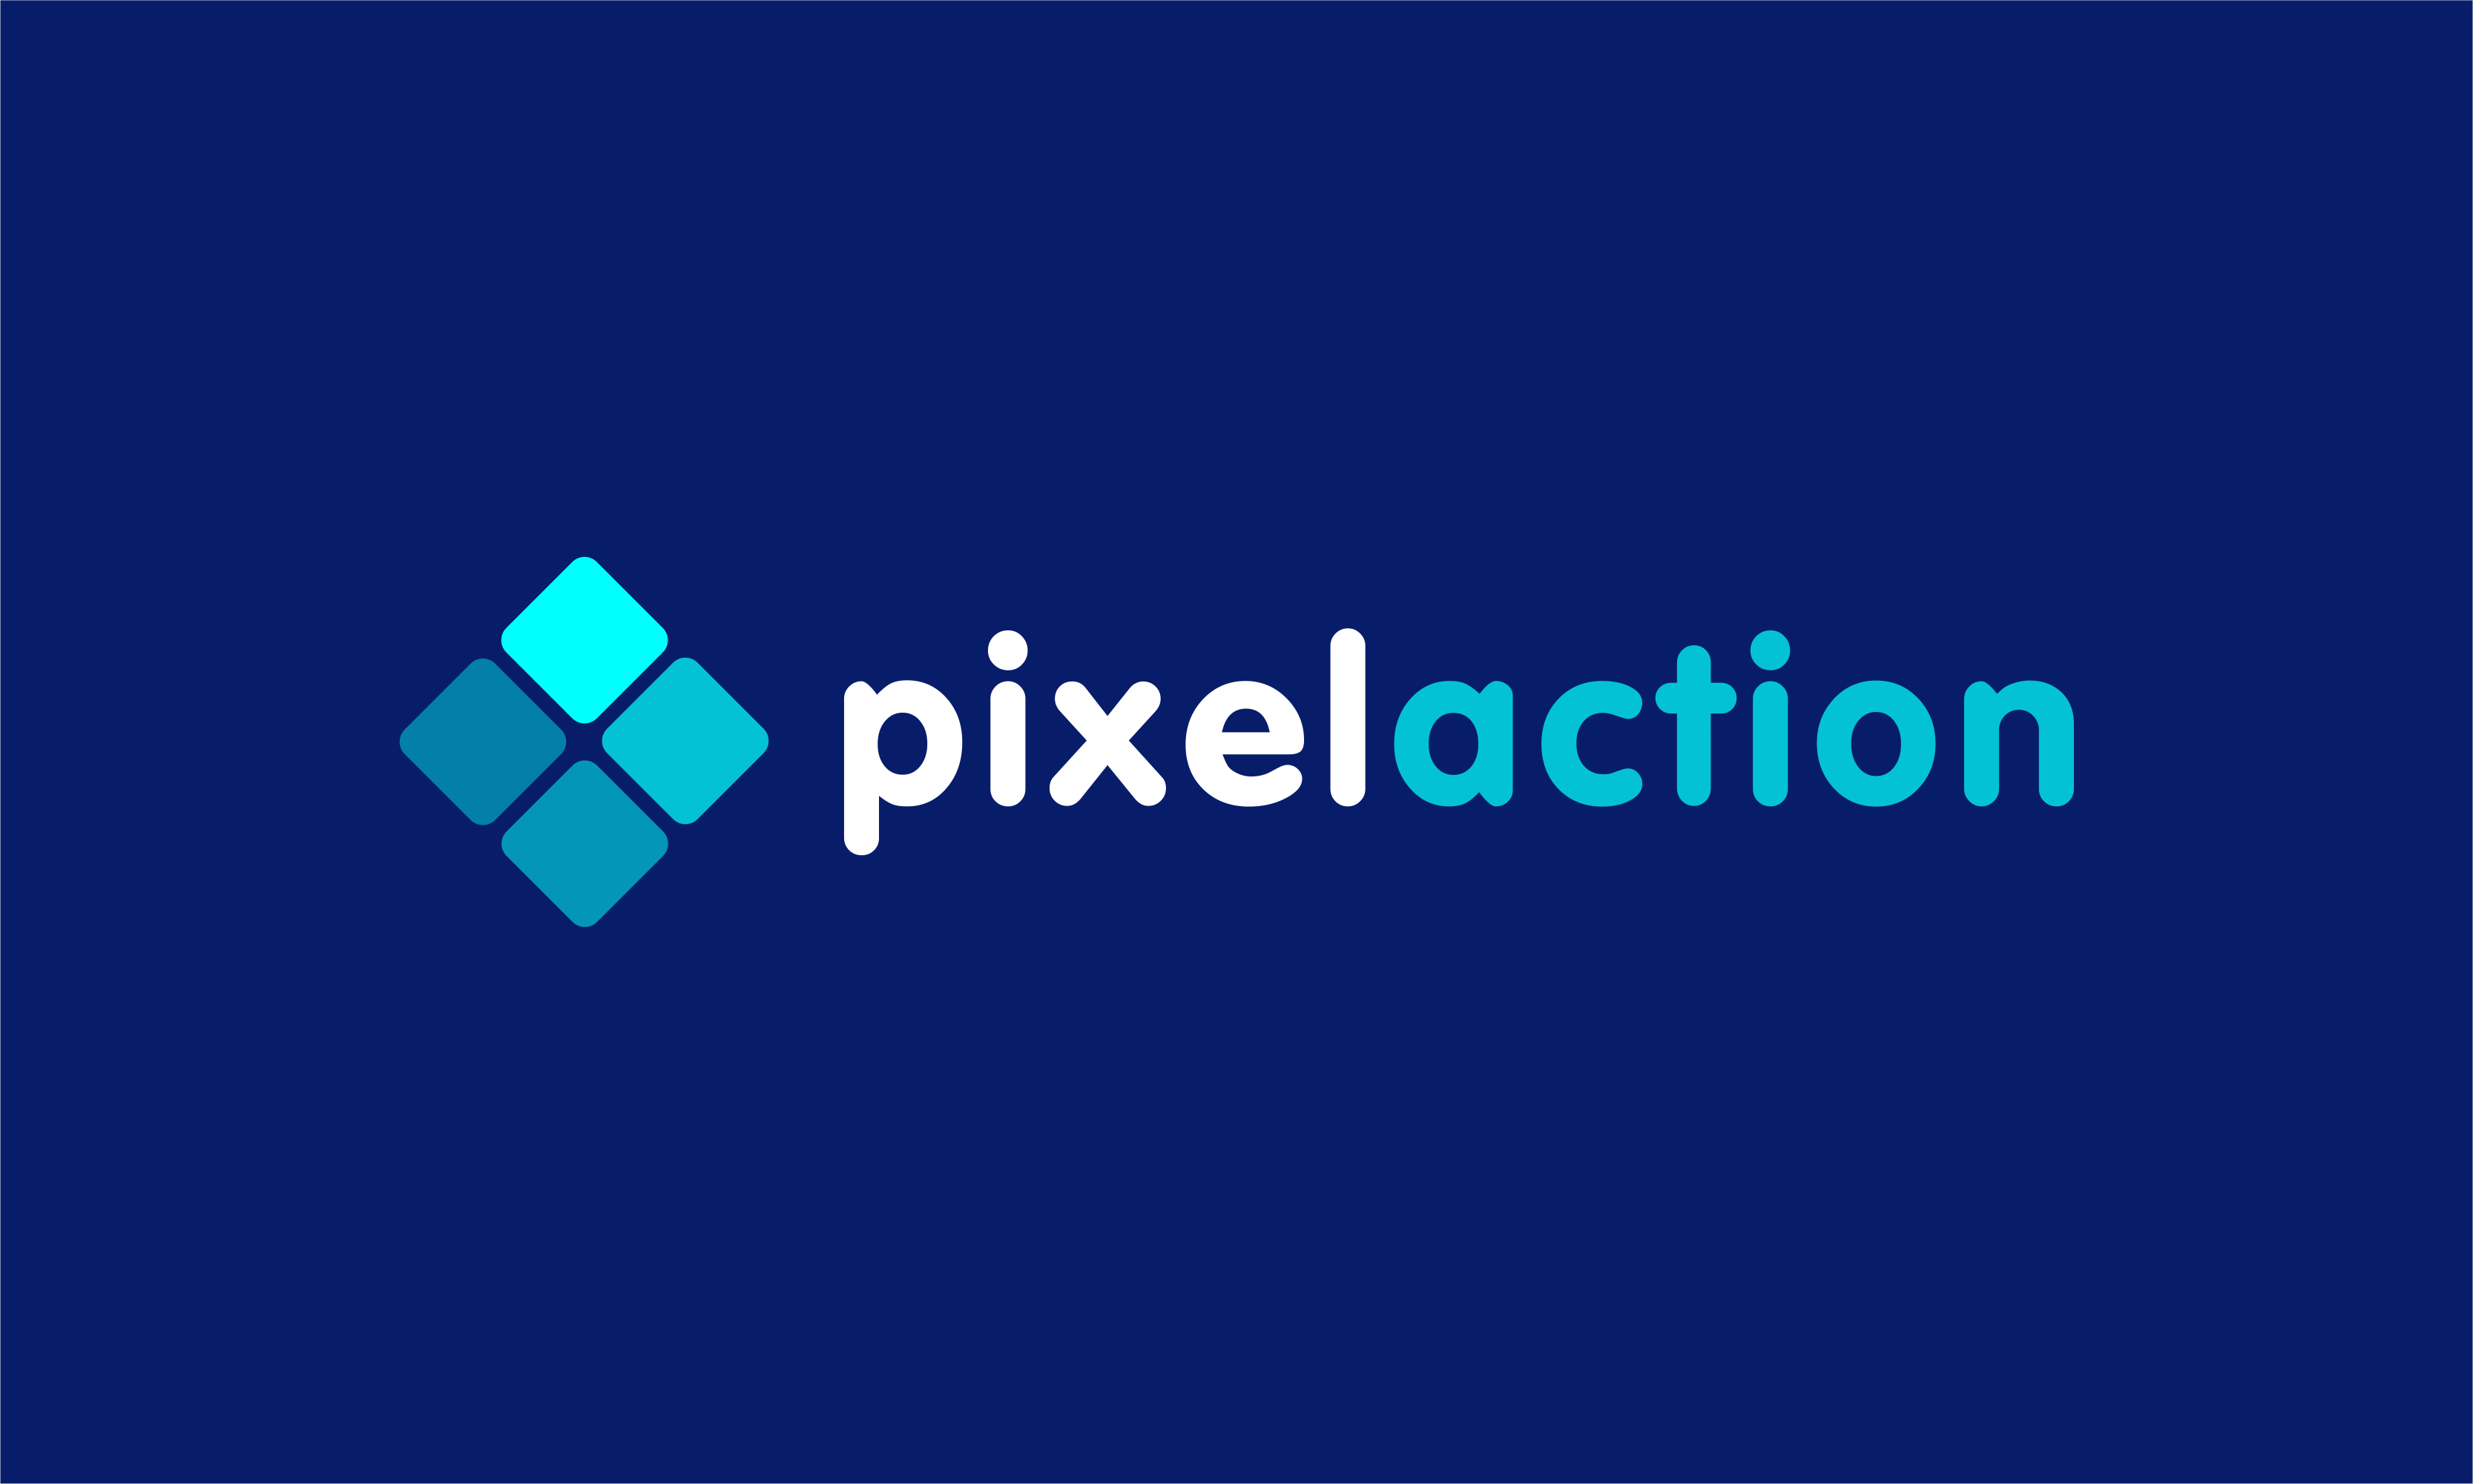 Pixelaction